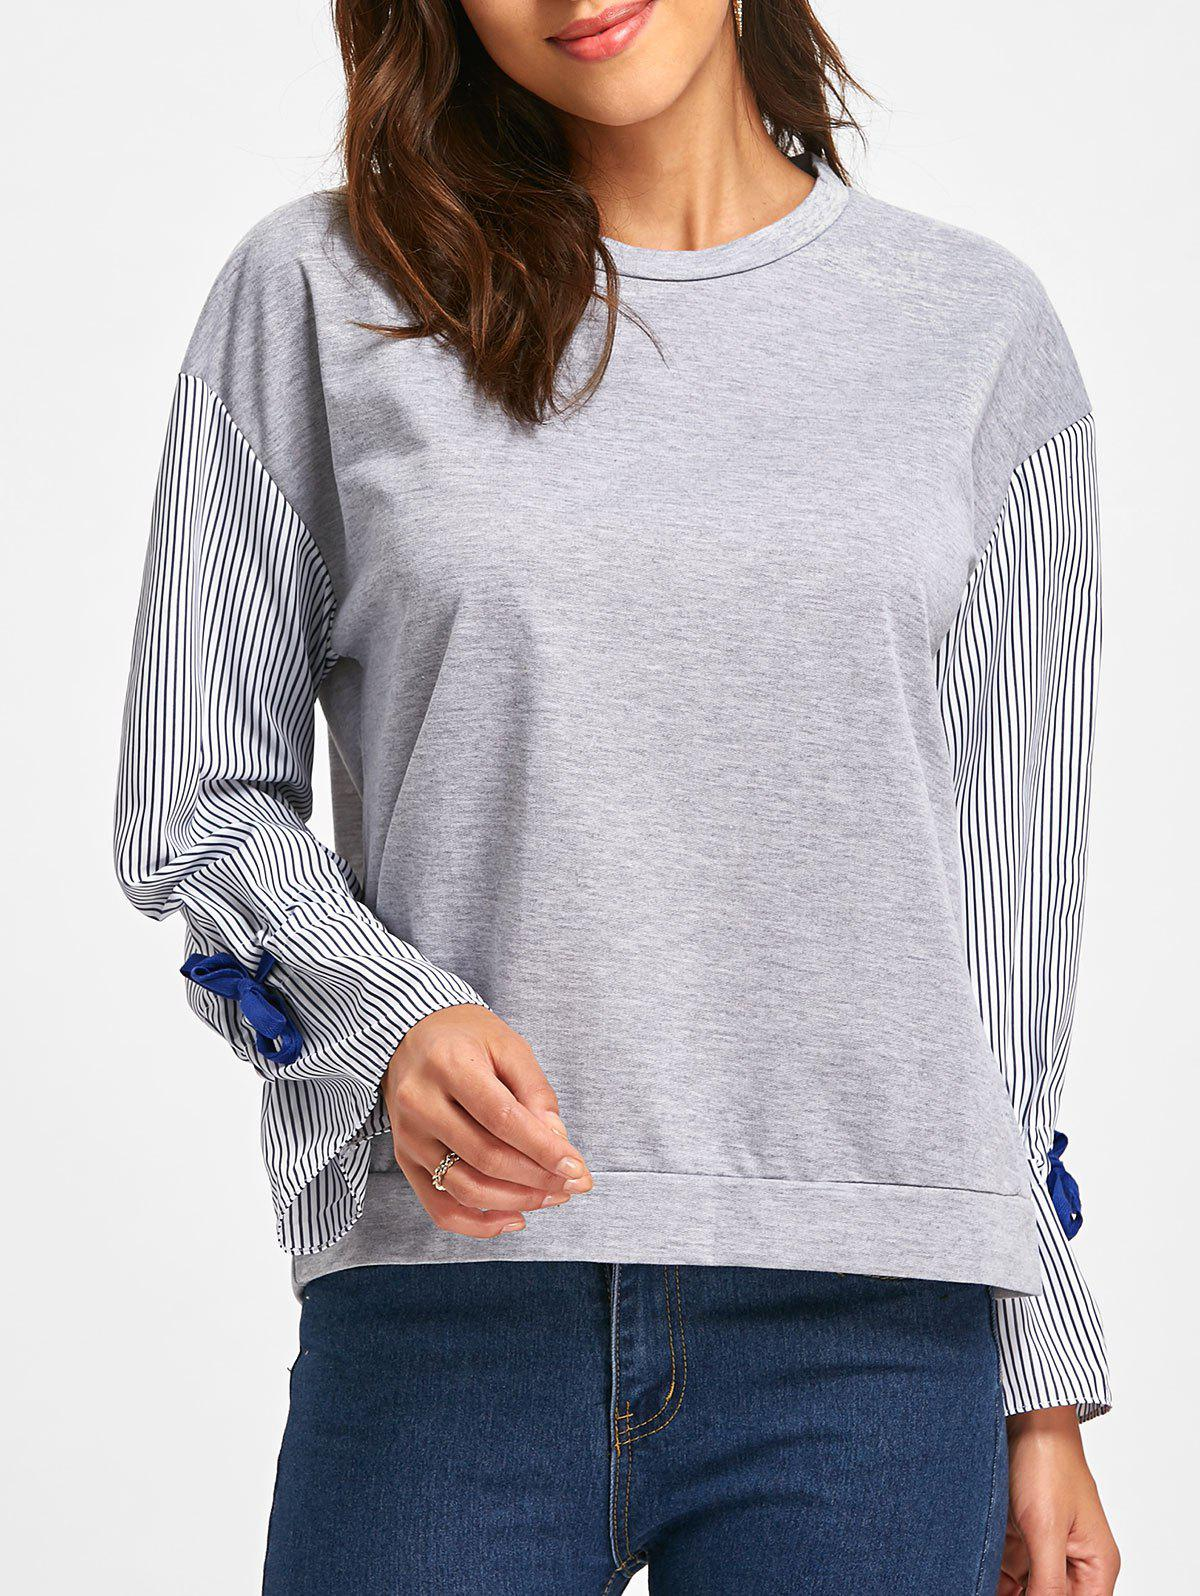 Bell Sleeve Striped Crew Neck Sweatshirt